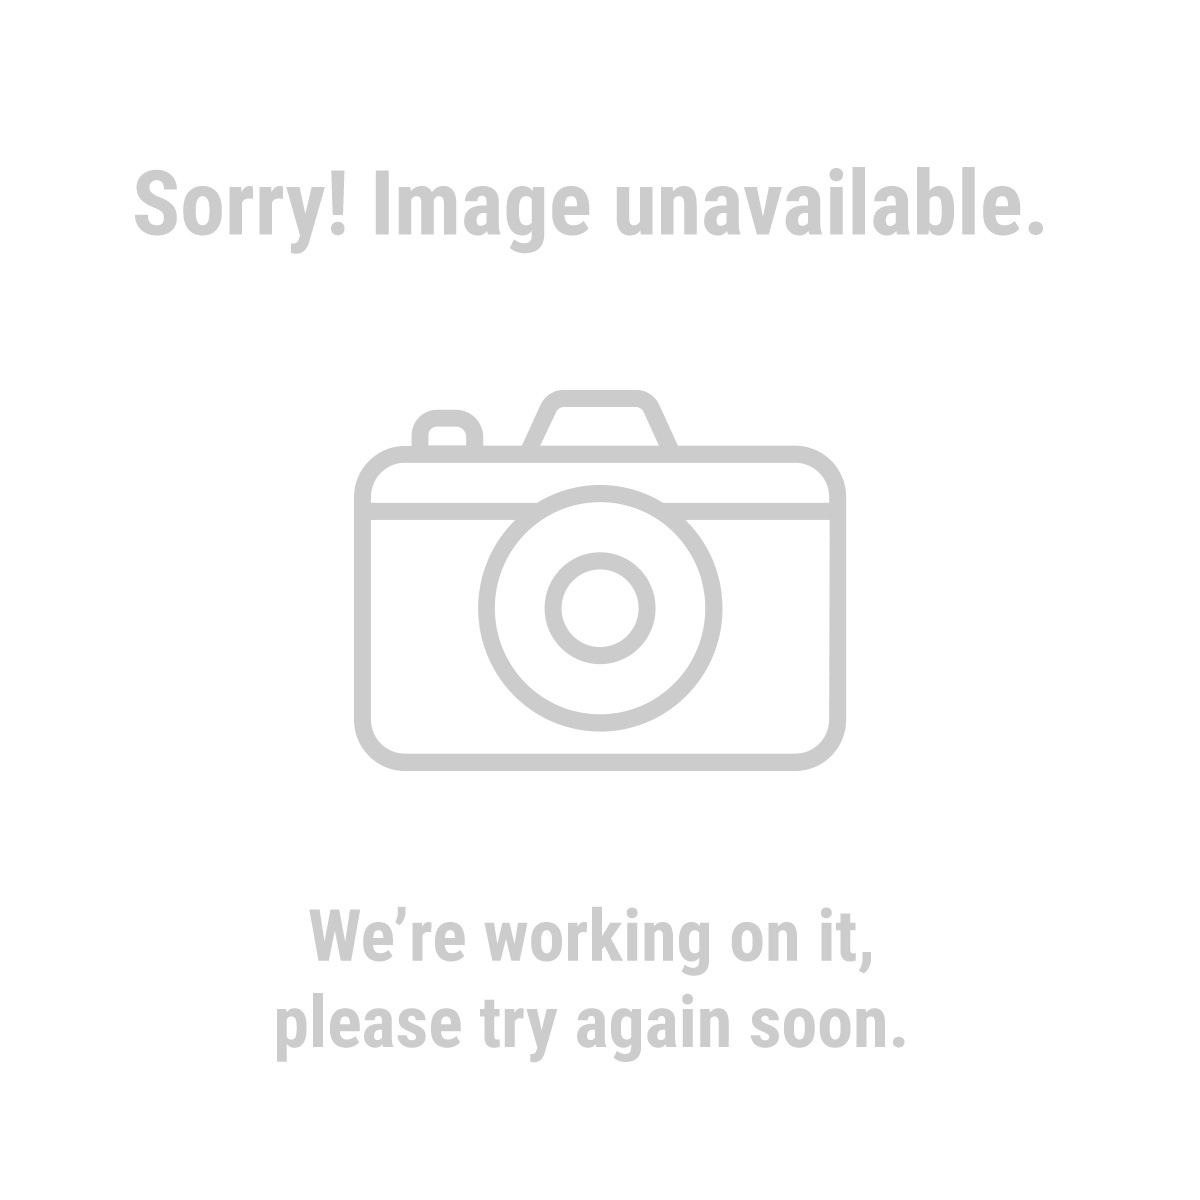 Rain Suits. Showing 40 of 47 results that match your query. Search Product Result. Product - Huntworthmm PVC Jacket and Pants Set, Oak Tree. Product Image. Custom Leathercraft RX XL Yellow Rain Suit 3 Piece. Product Image. Price $ Product Title. Custom Leathercraft RX XL Yellow Rain Suit 3 Piece. Product - Black Brand.